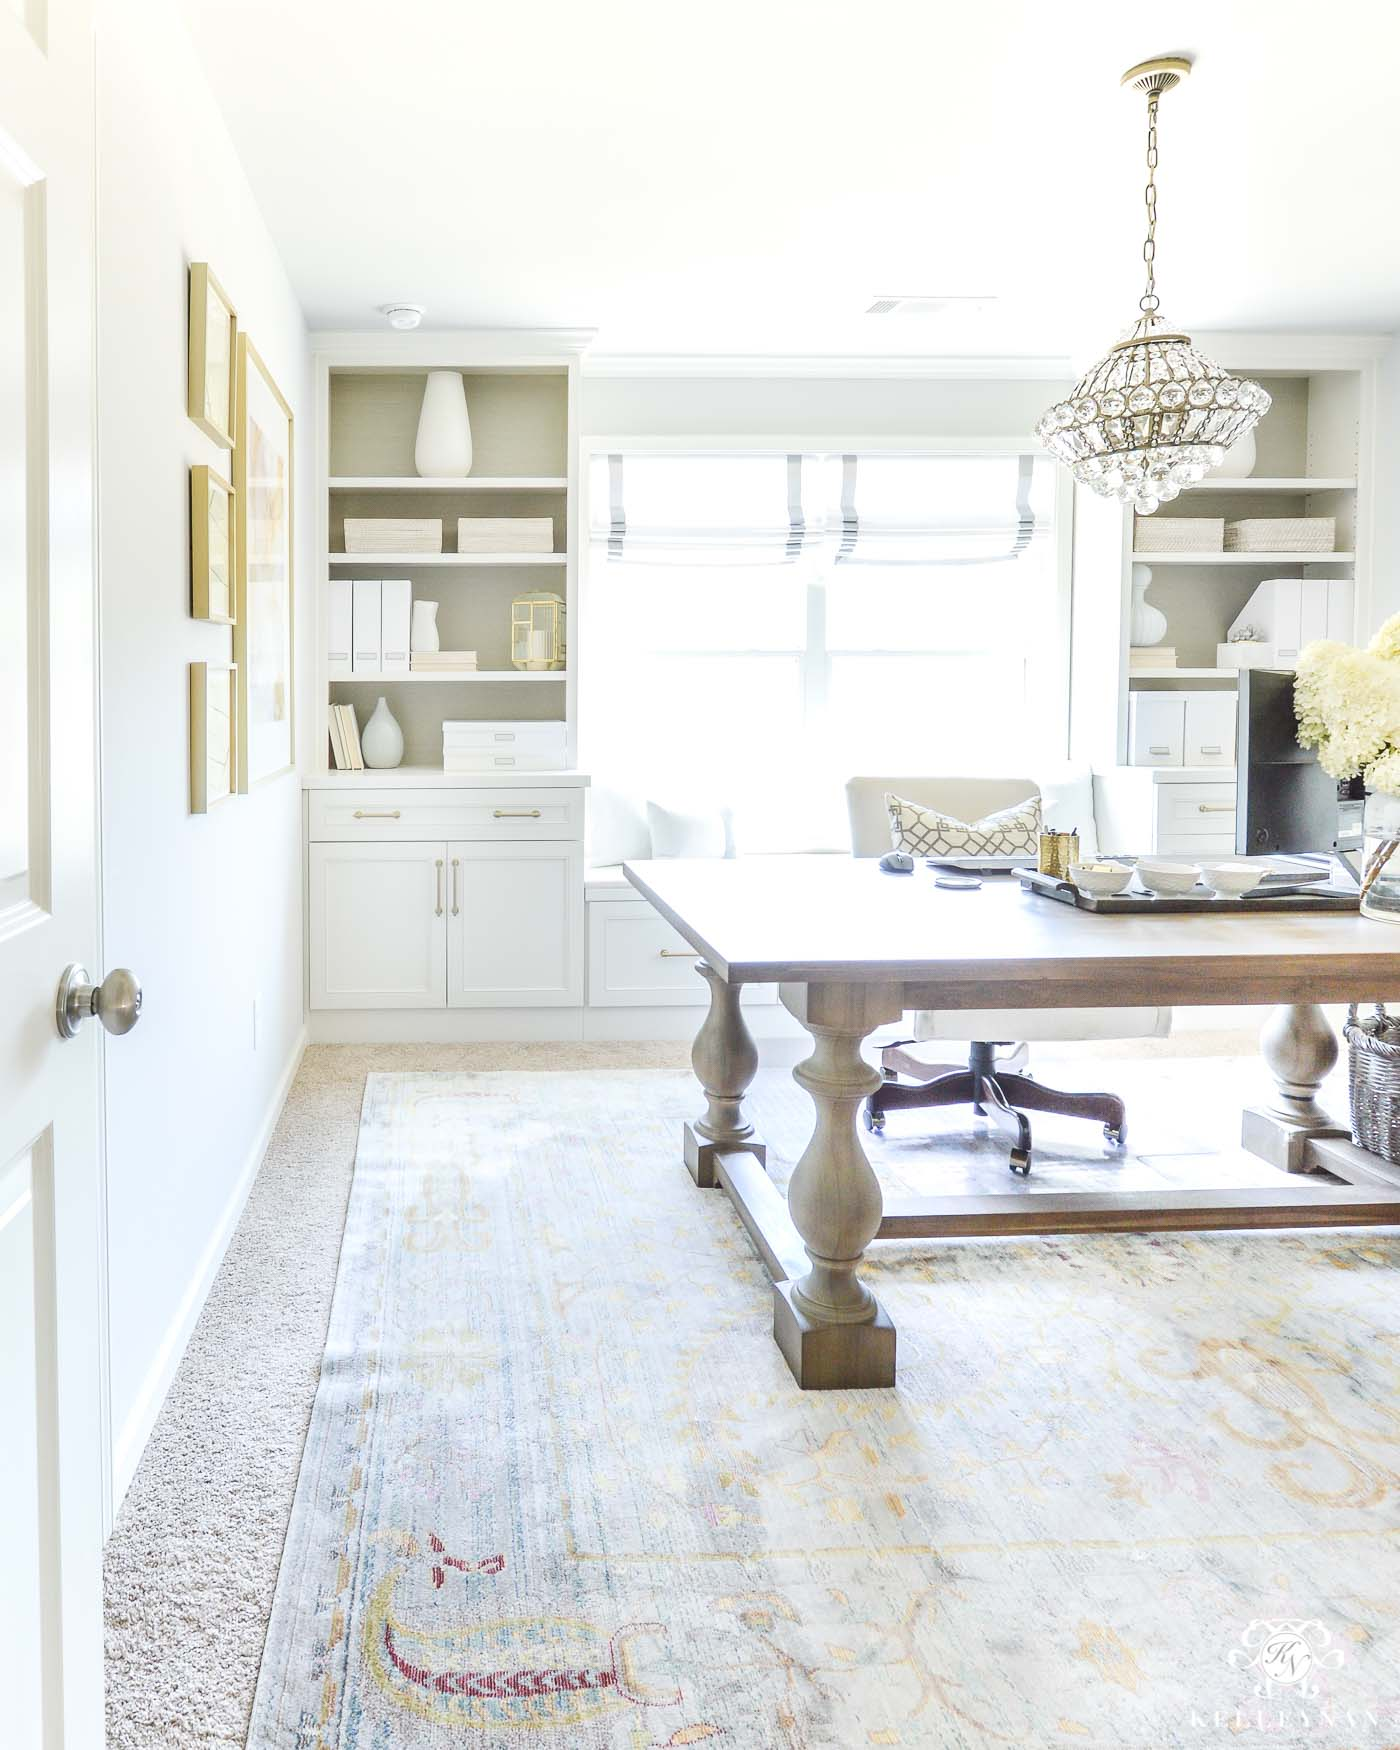 Home office with built-in shelving and chandelier